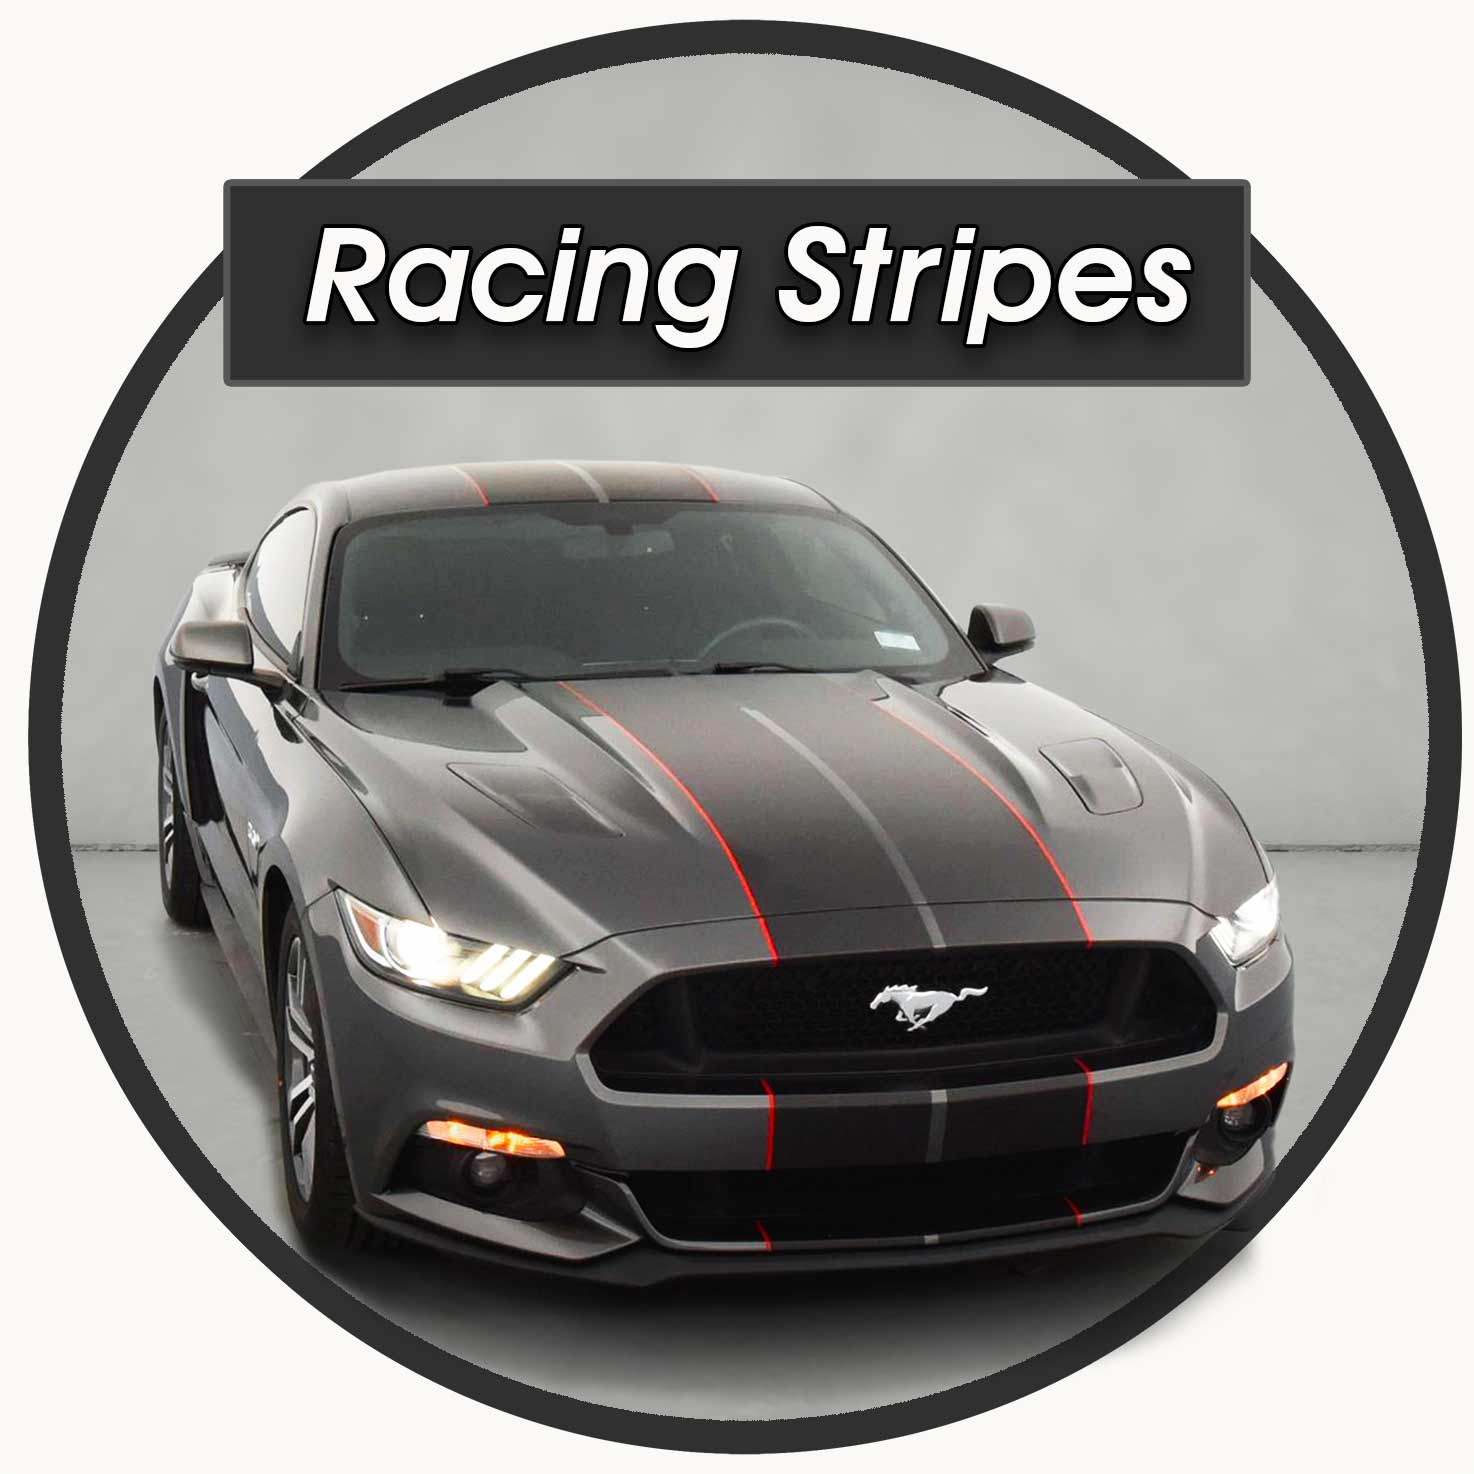 Ford Mustang Racing Stripes with red pinstriping GT350 style